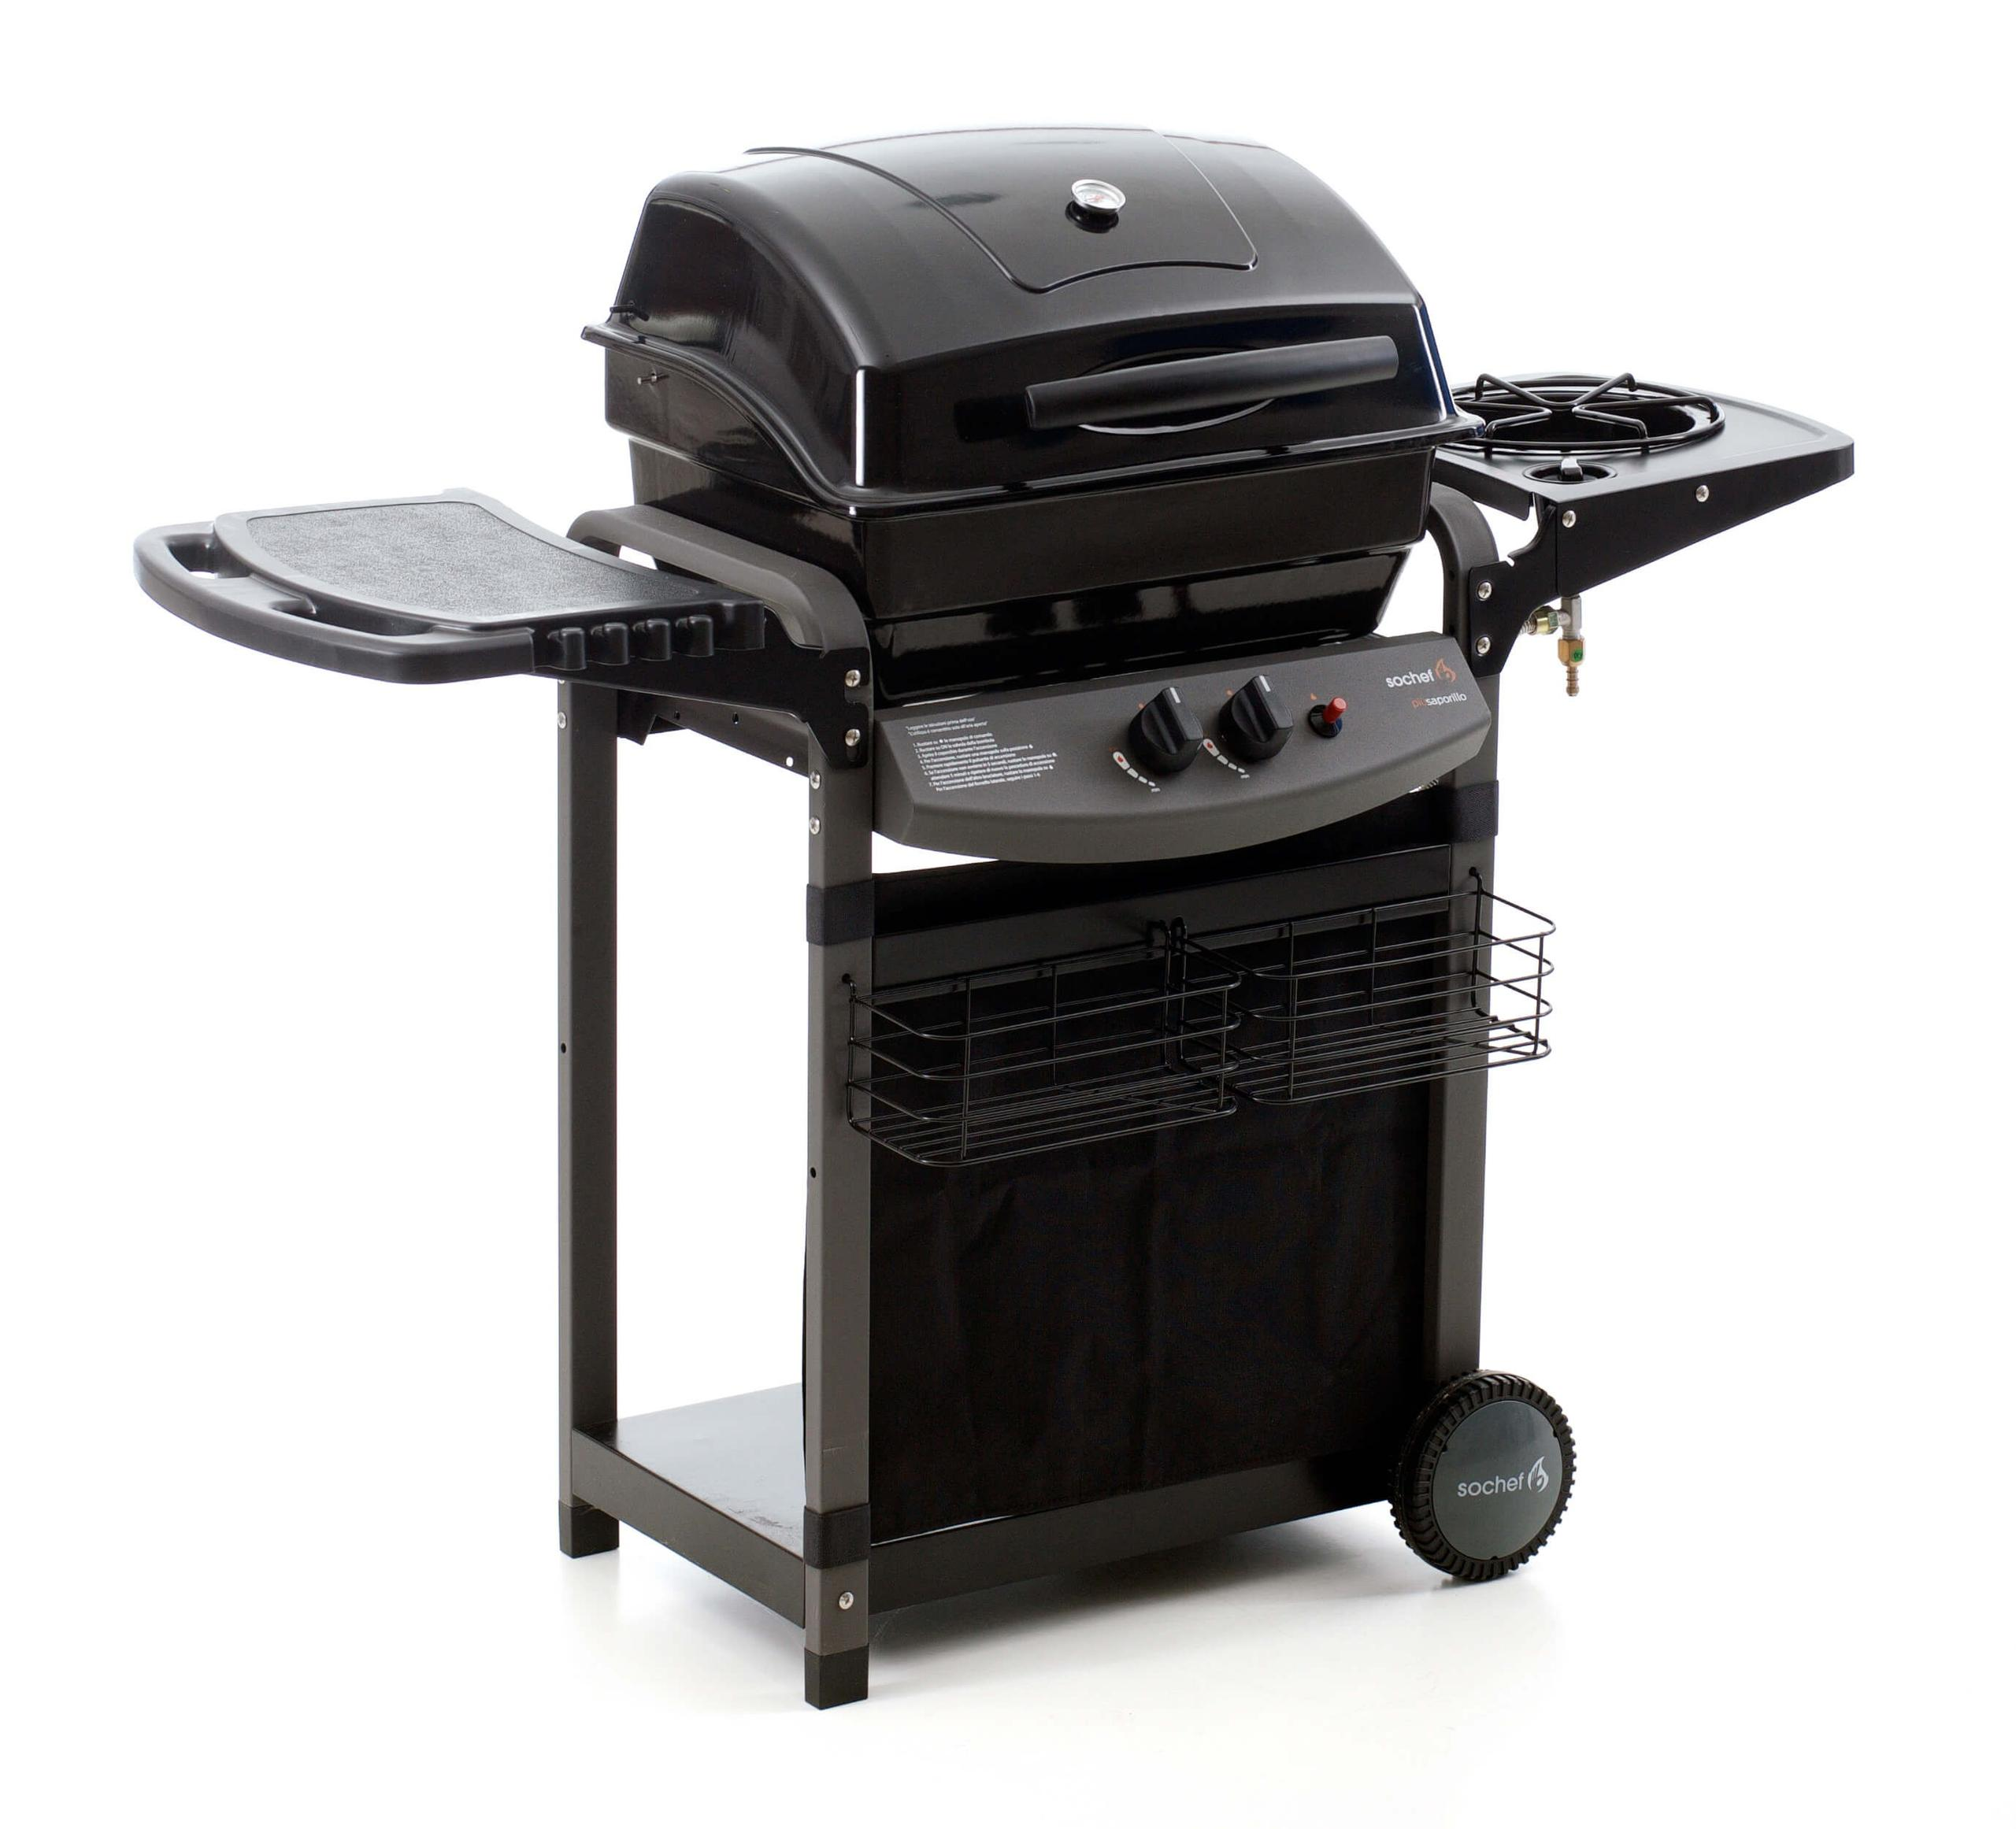 Barbecue a gas sistema roccia lavica con fornello laterale for Giordano shop barbecue a gas